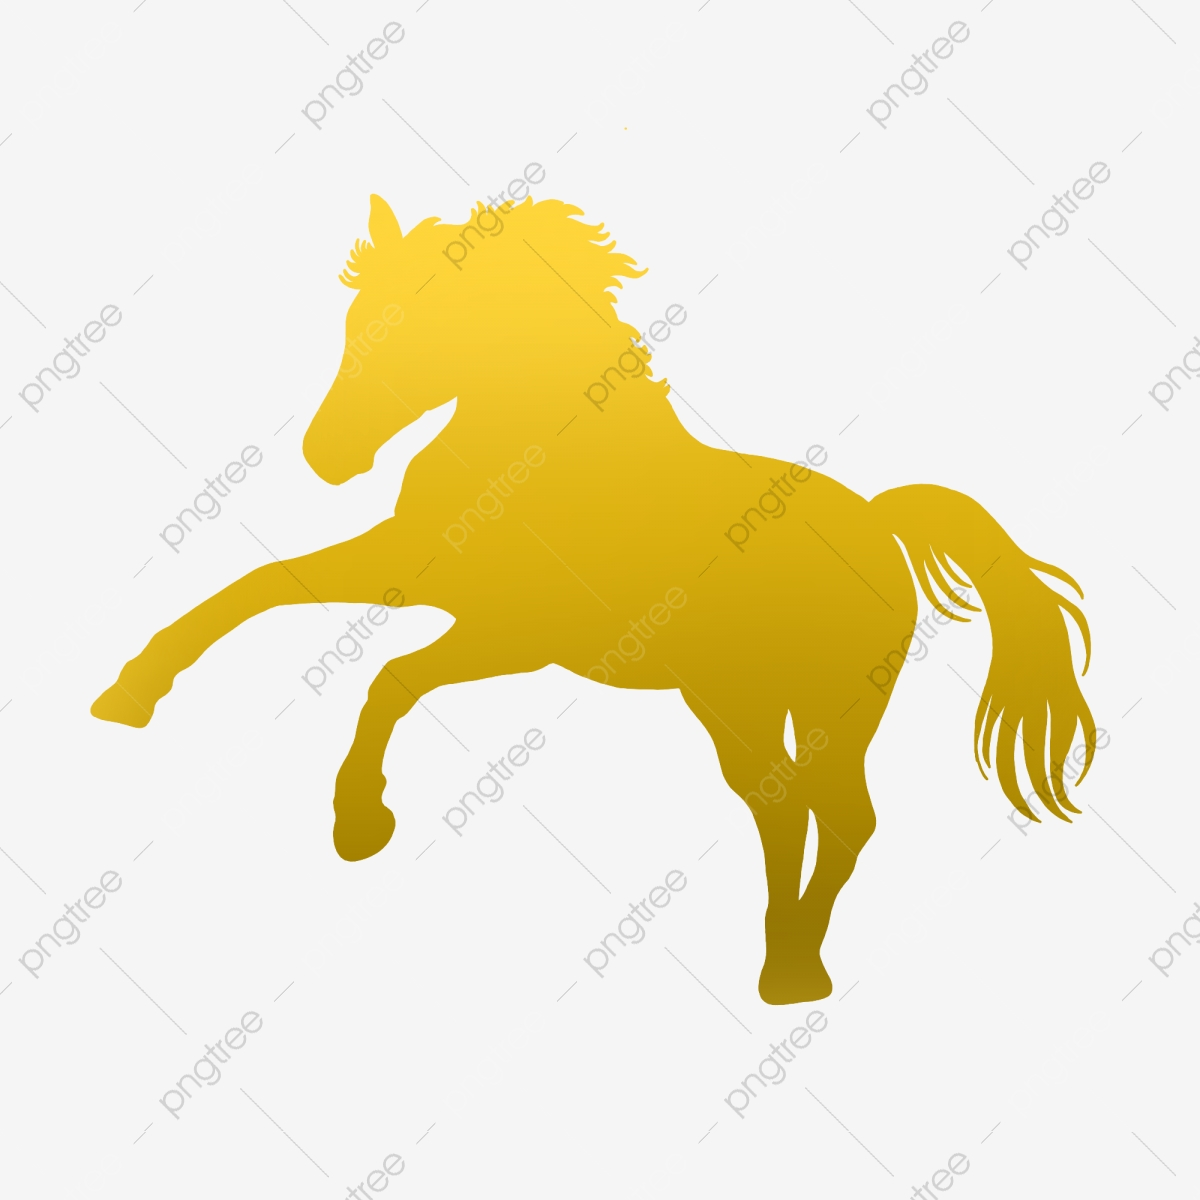 Golden Gradient Running Horse Gold Warm Yellow Png Transparent Clipart Image And Psd File For Free Download